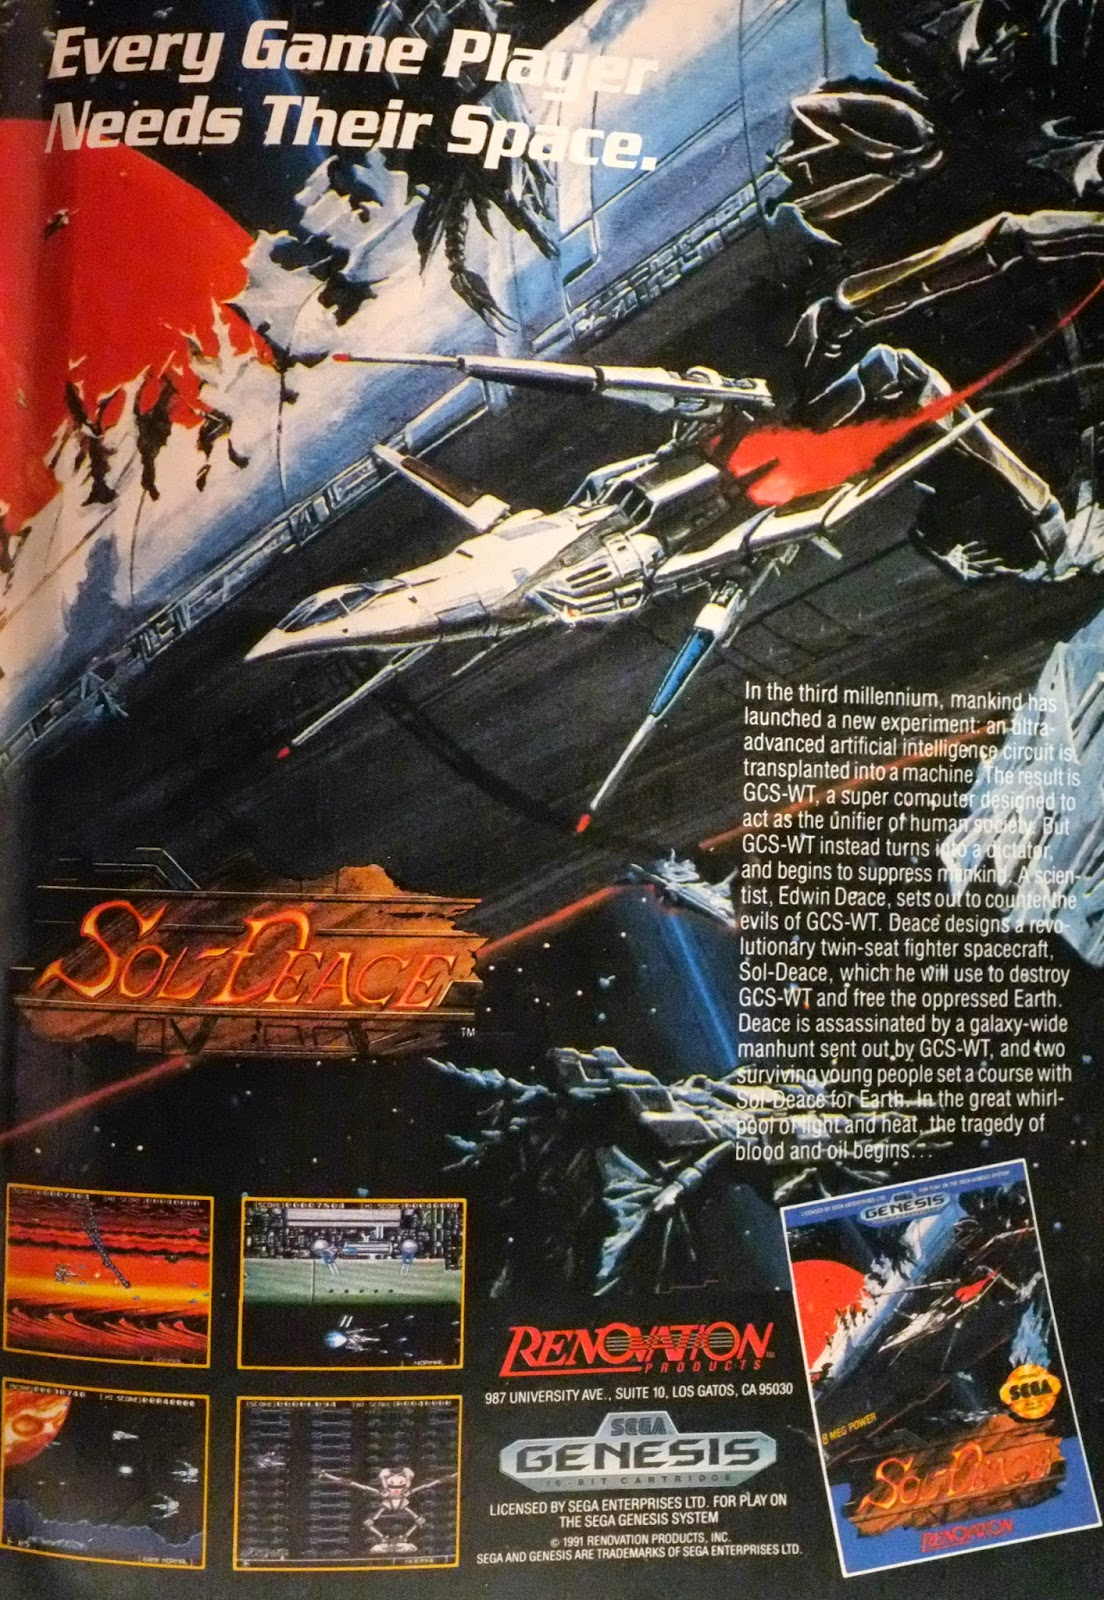 Sol-Deace for Genesis advertisement